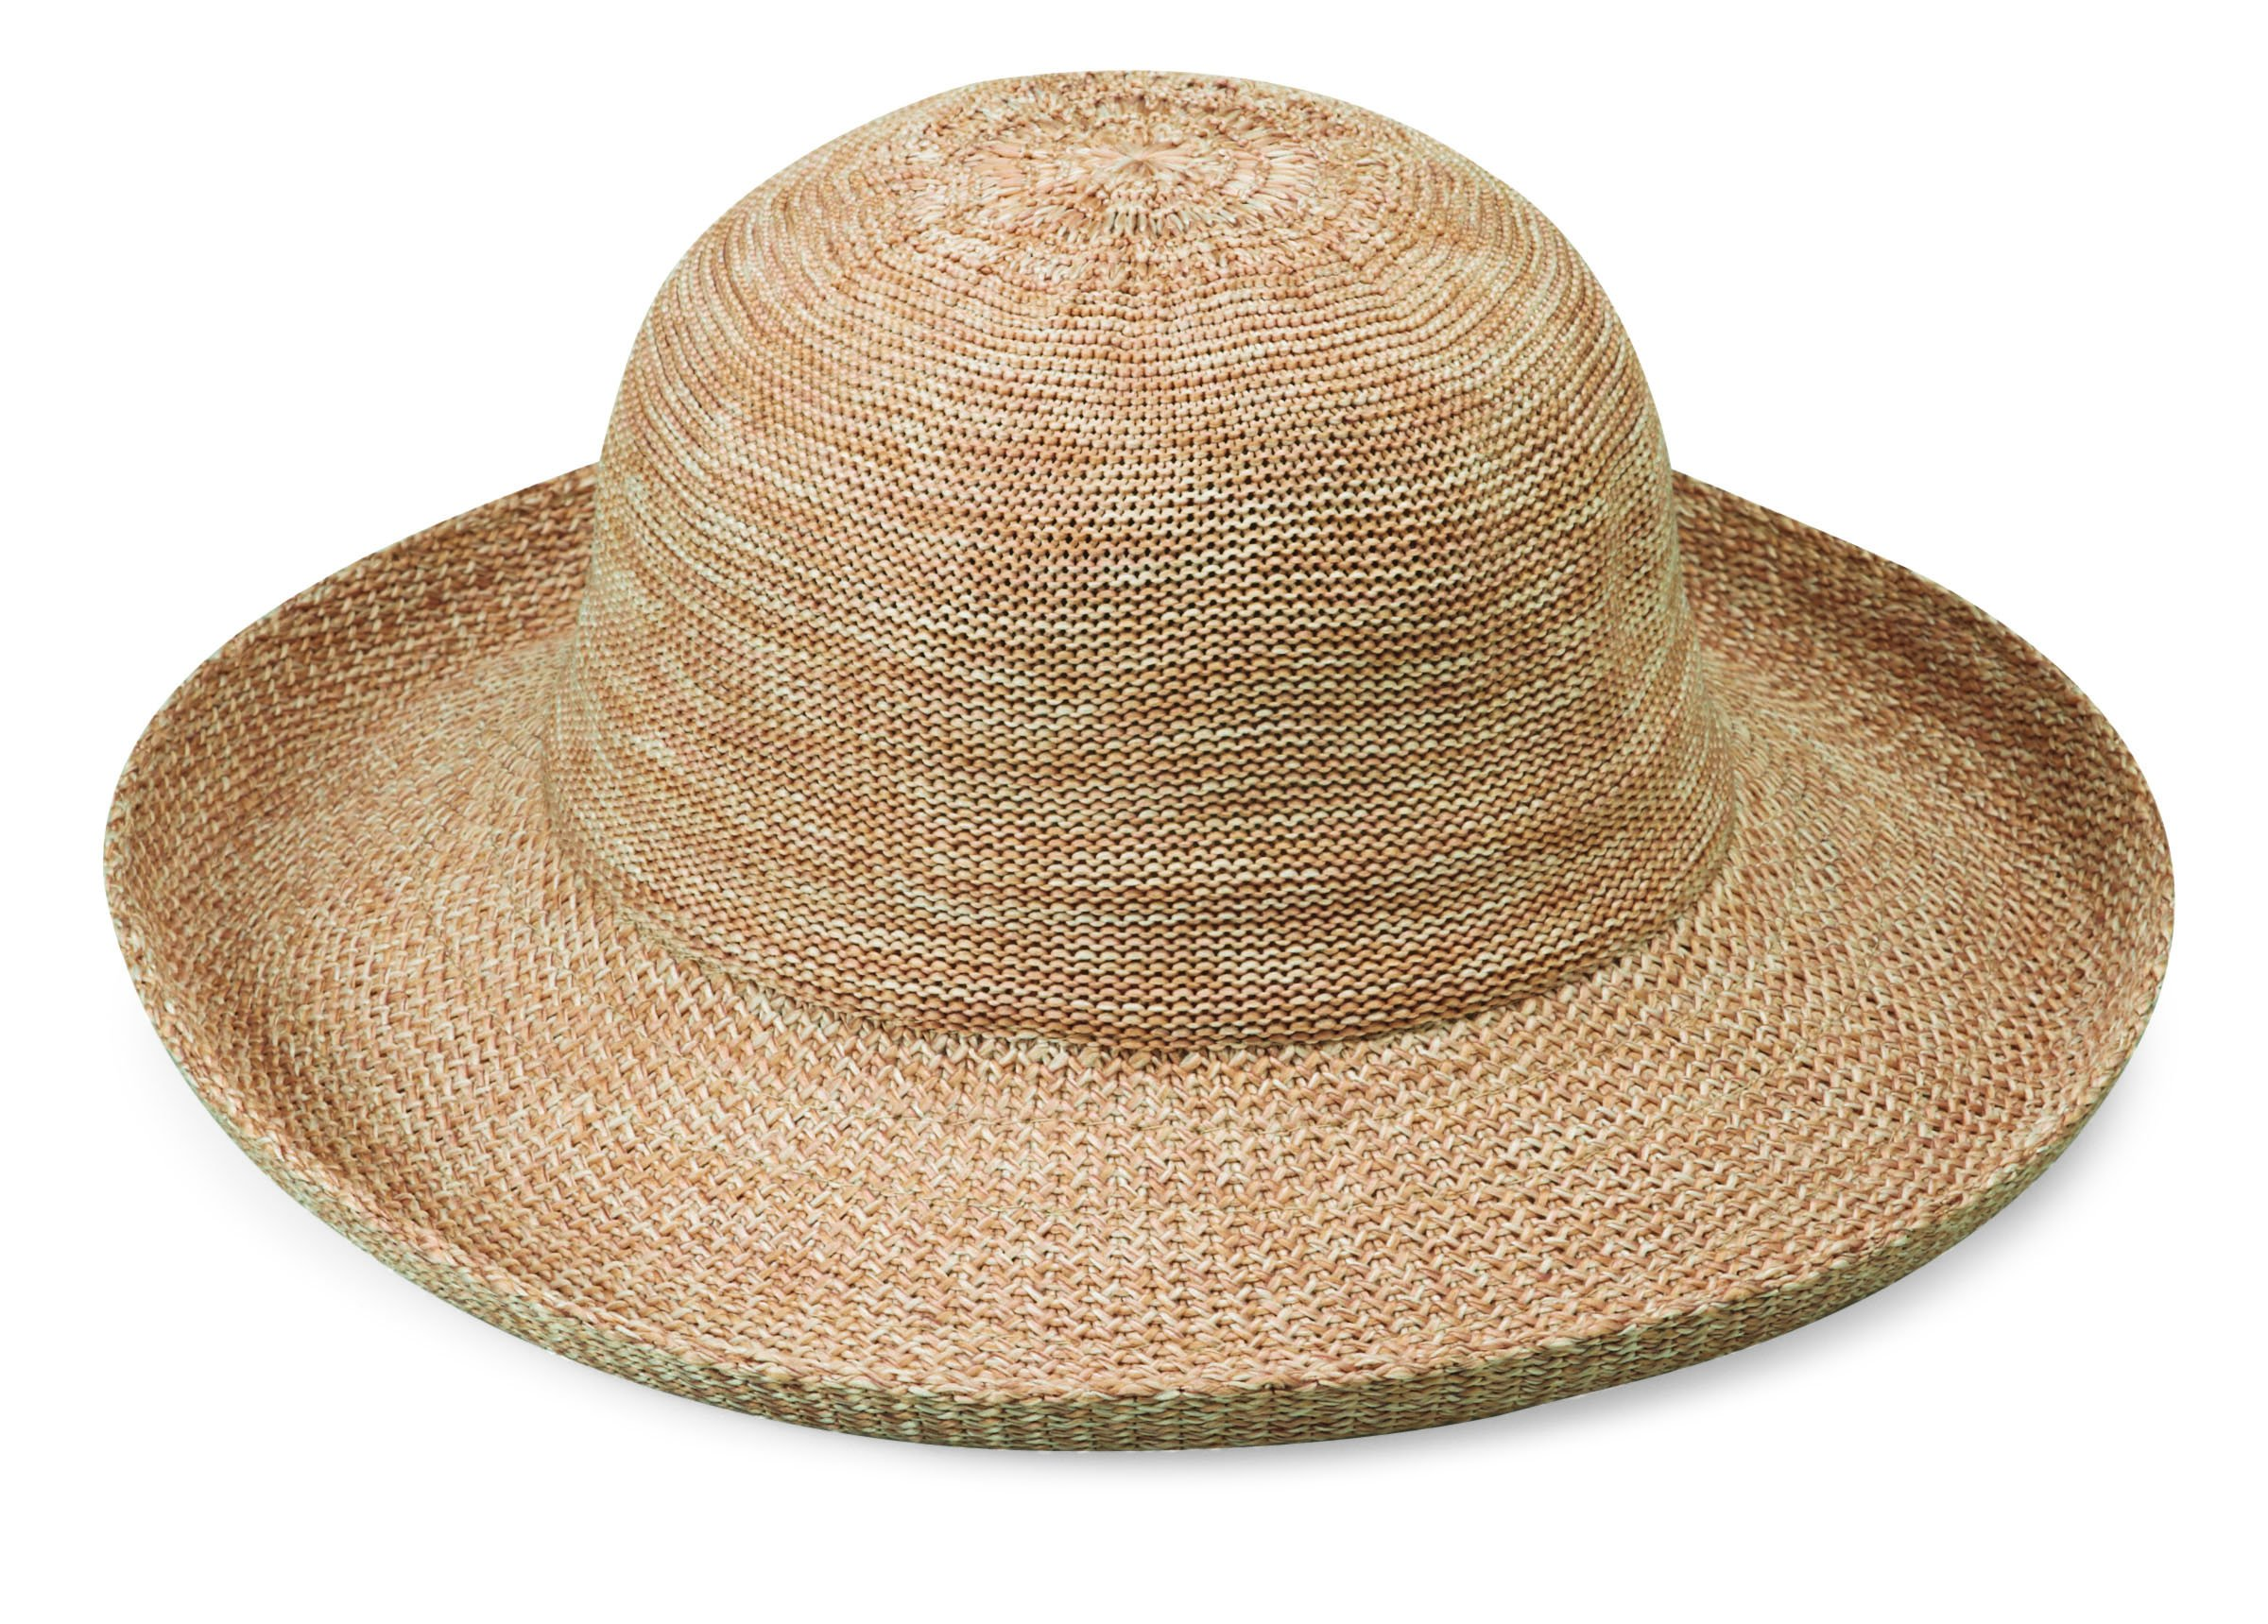 553f50c3aa666 Best Rated in Women s Sun Hats   Helpful Customer Reviews - Amazon.com